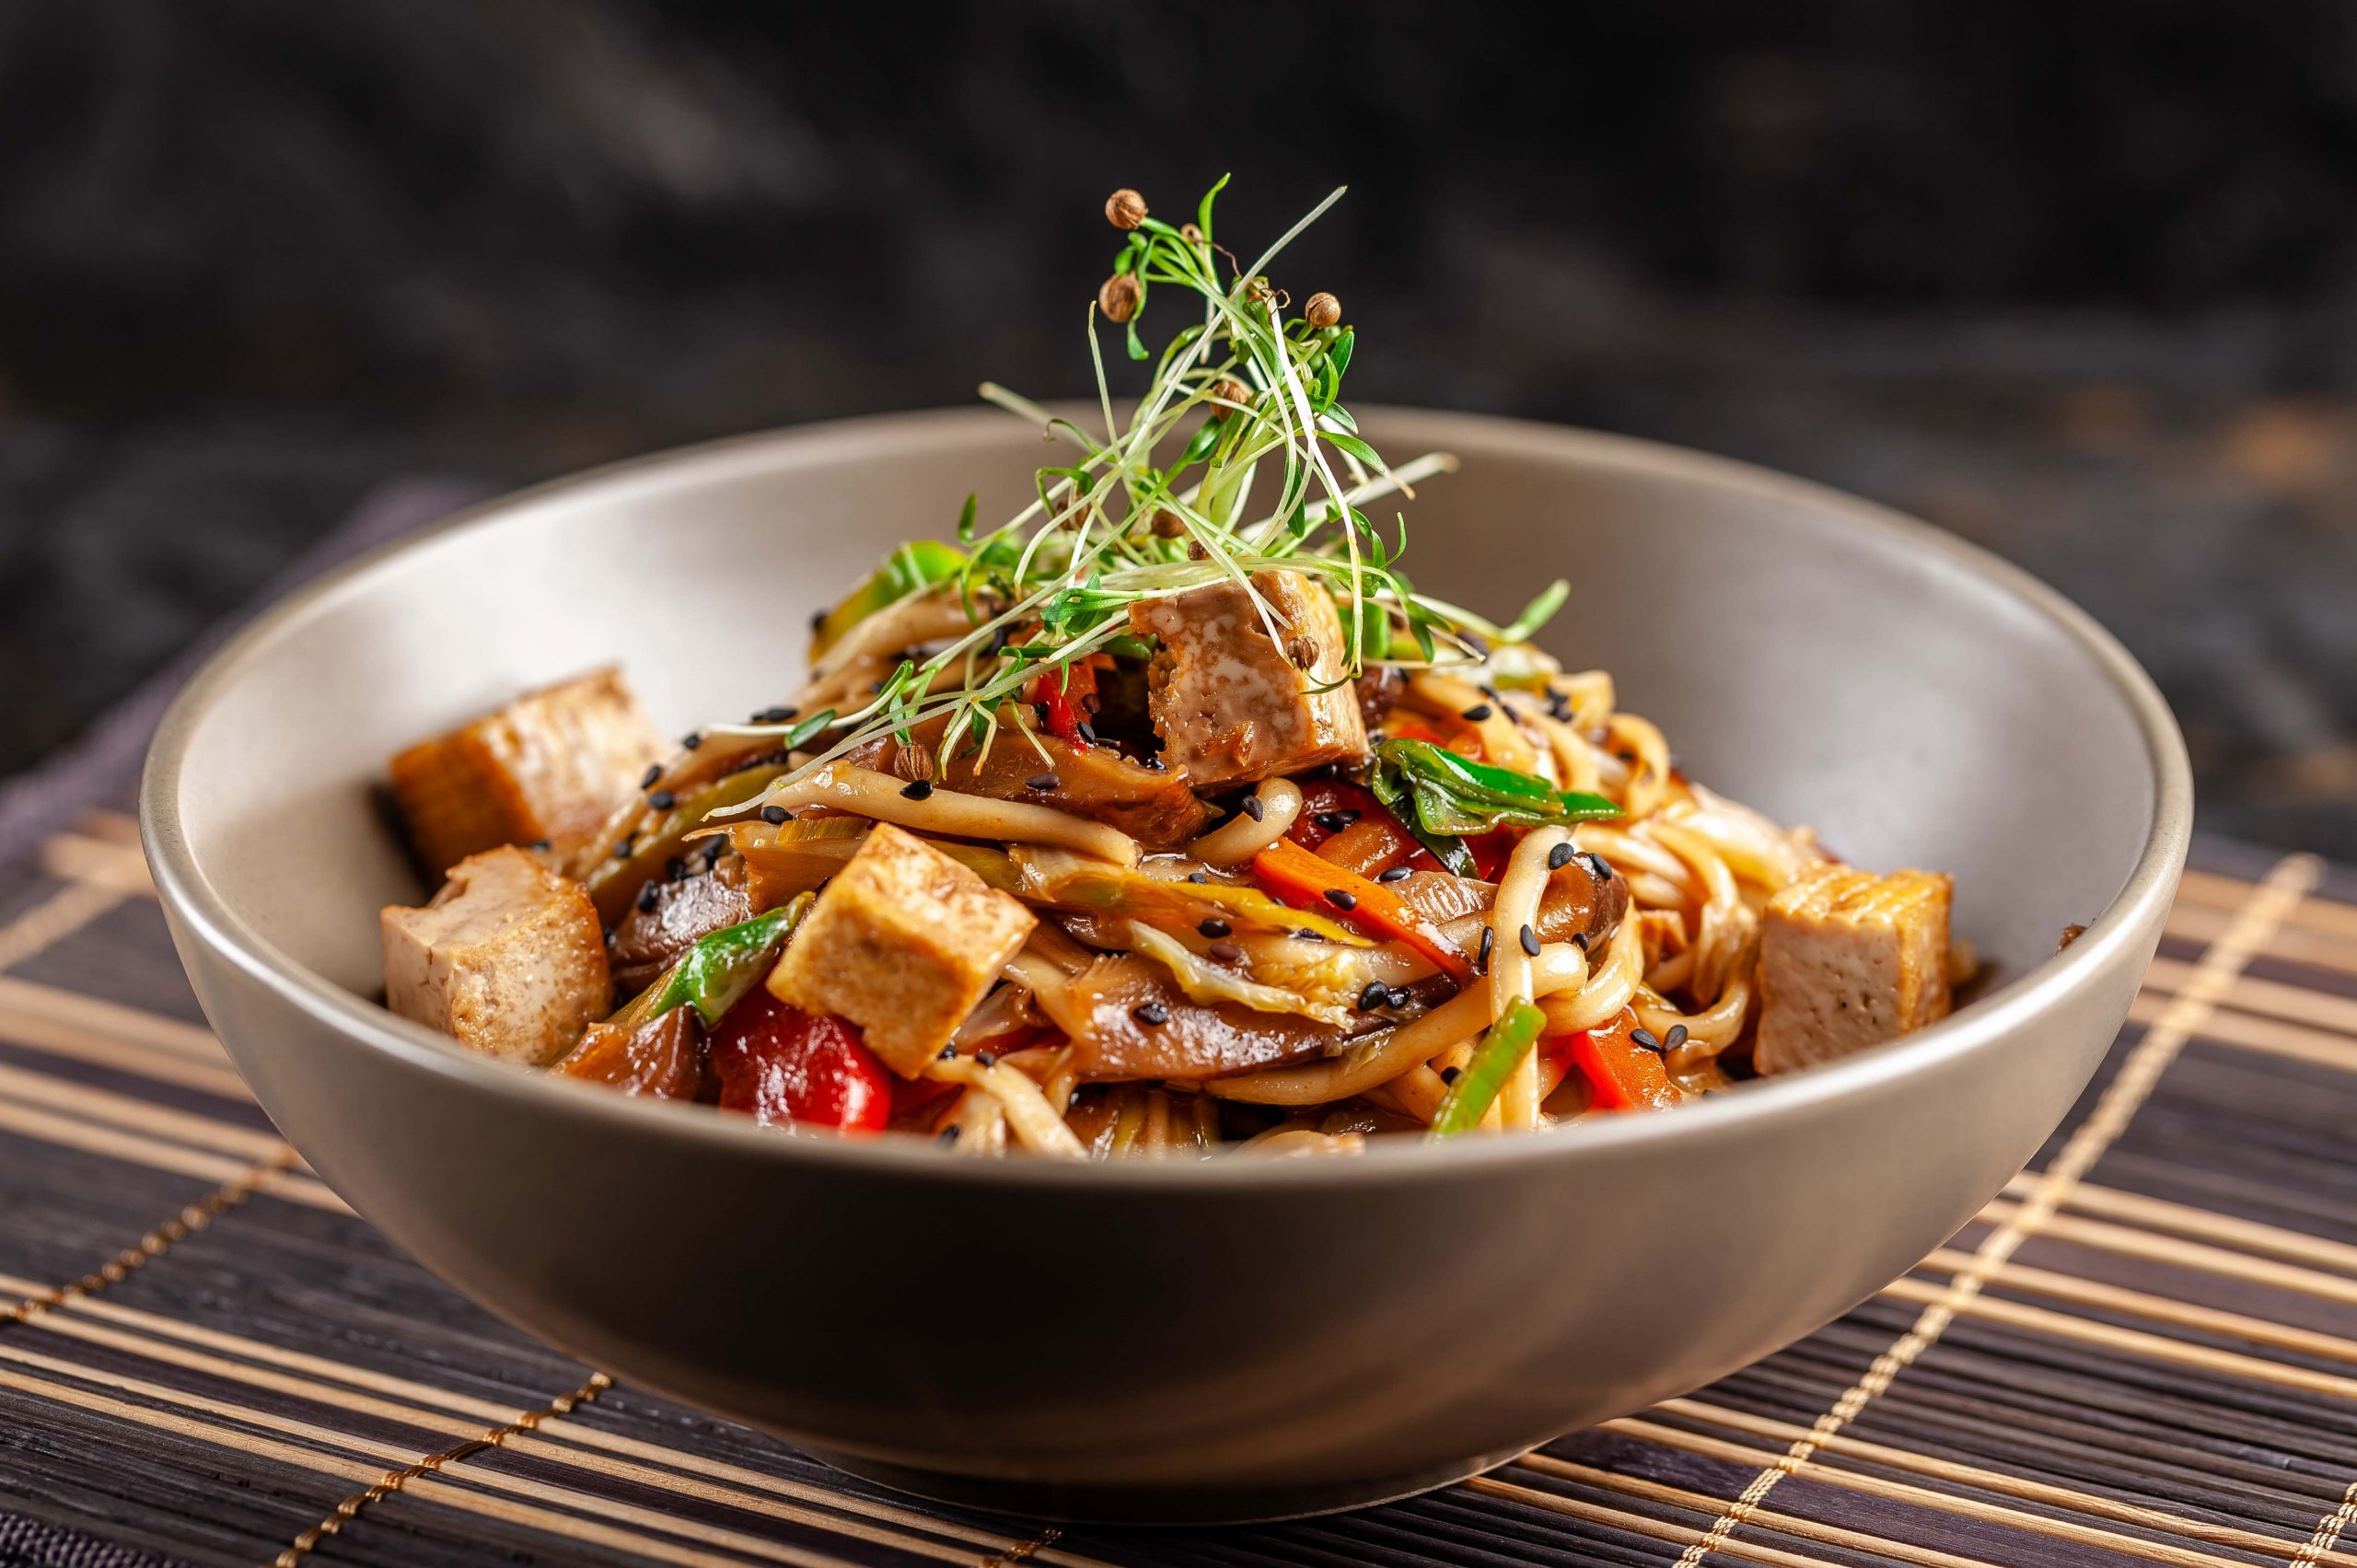 Sweet chilli tofu with pineapple stir-fried noodles